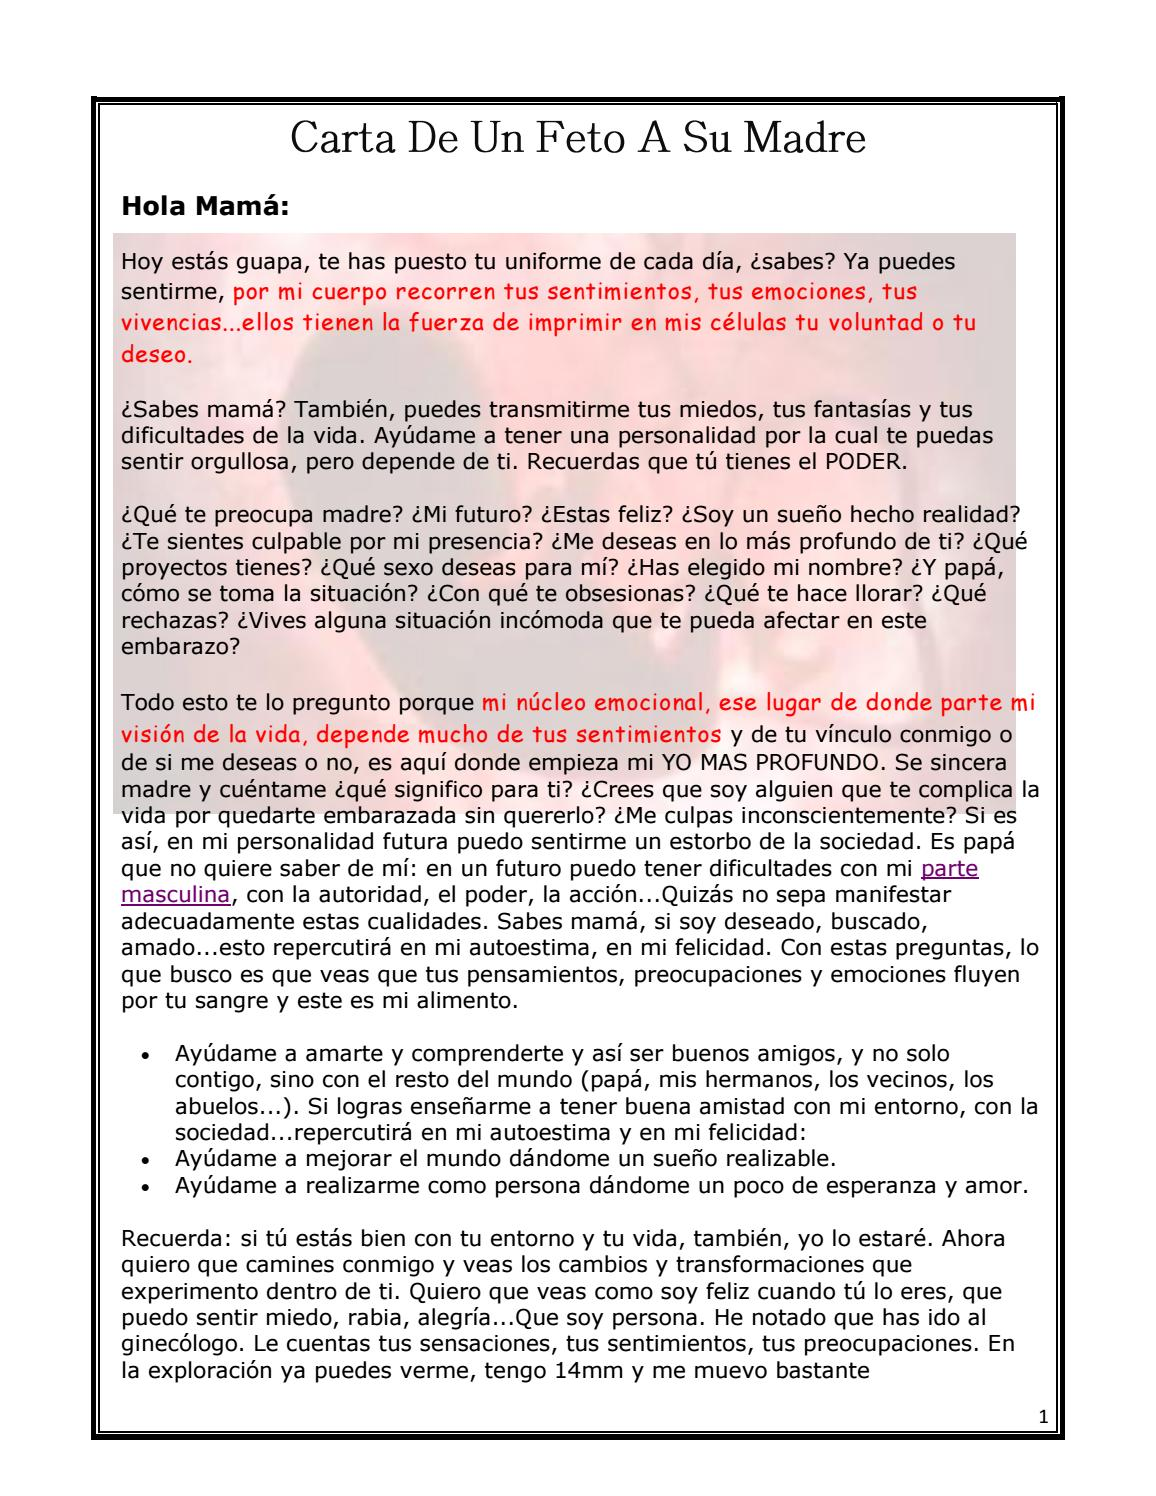 Carta De Un Feto A Su Madre By Hortencia Issuu